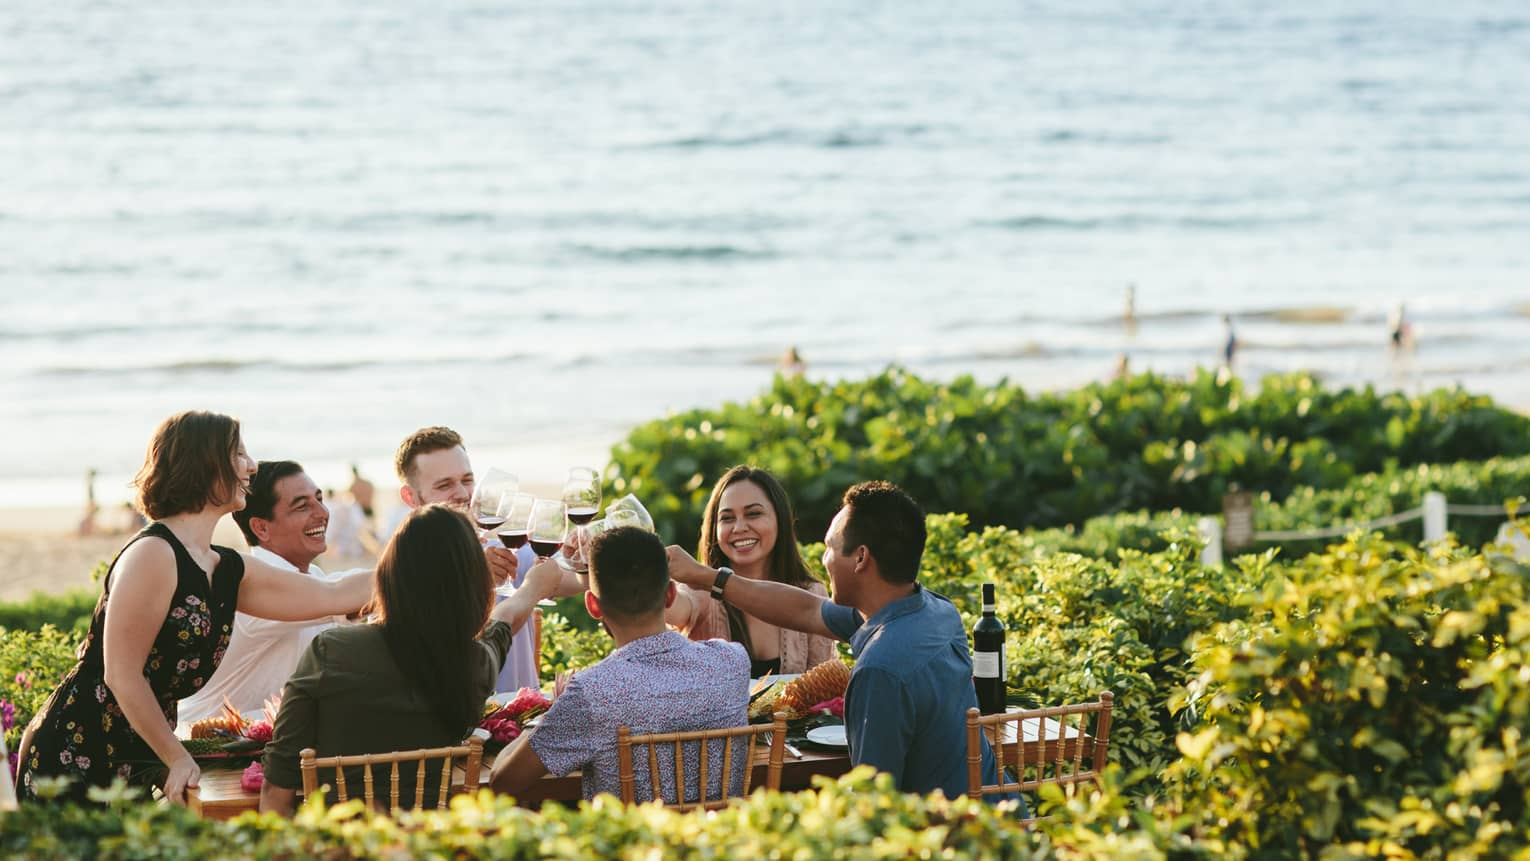 A group of guests make a toast at a beachfront dining location